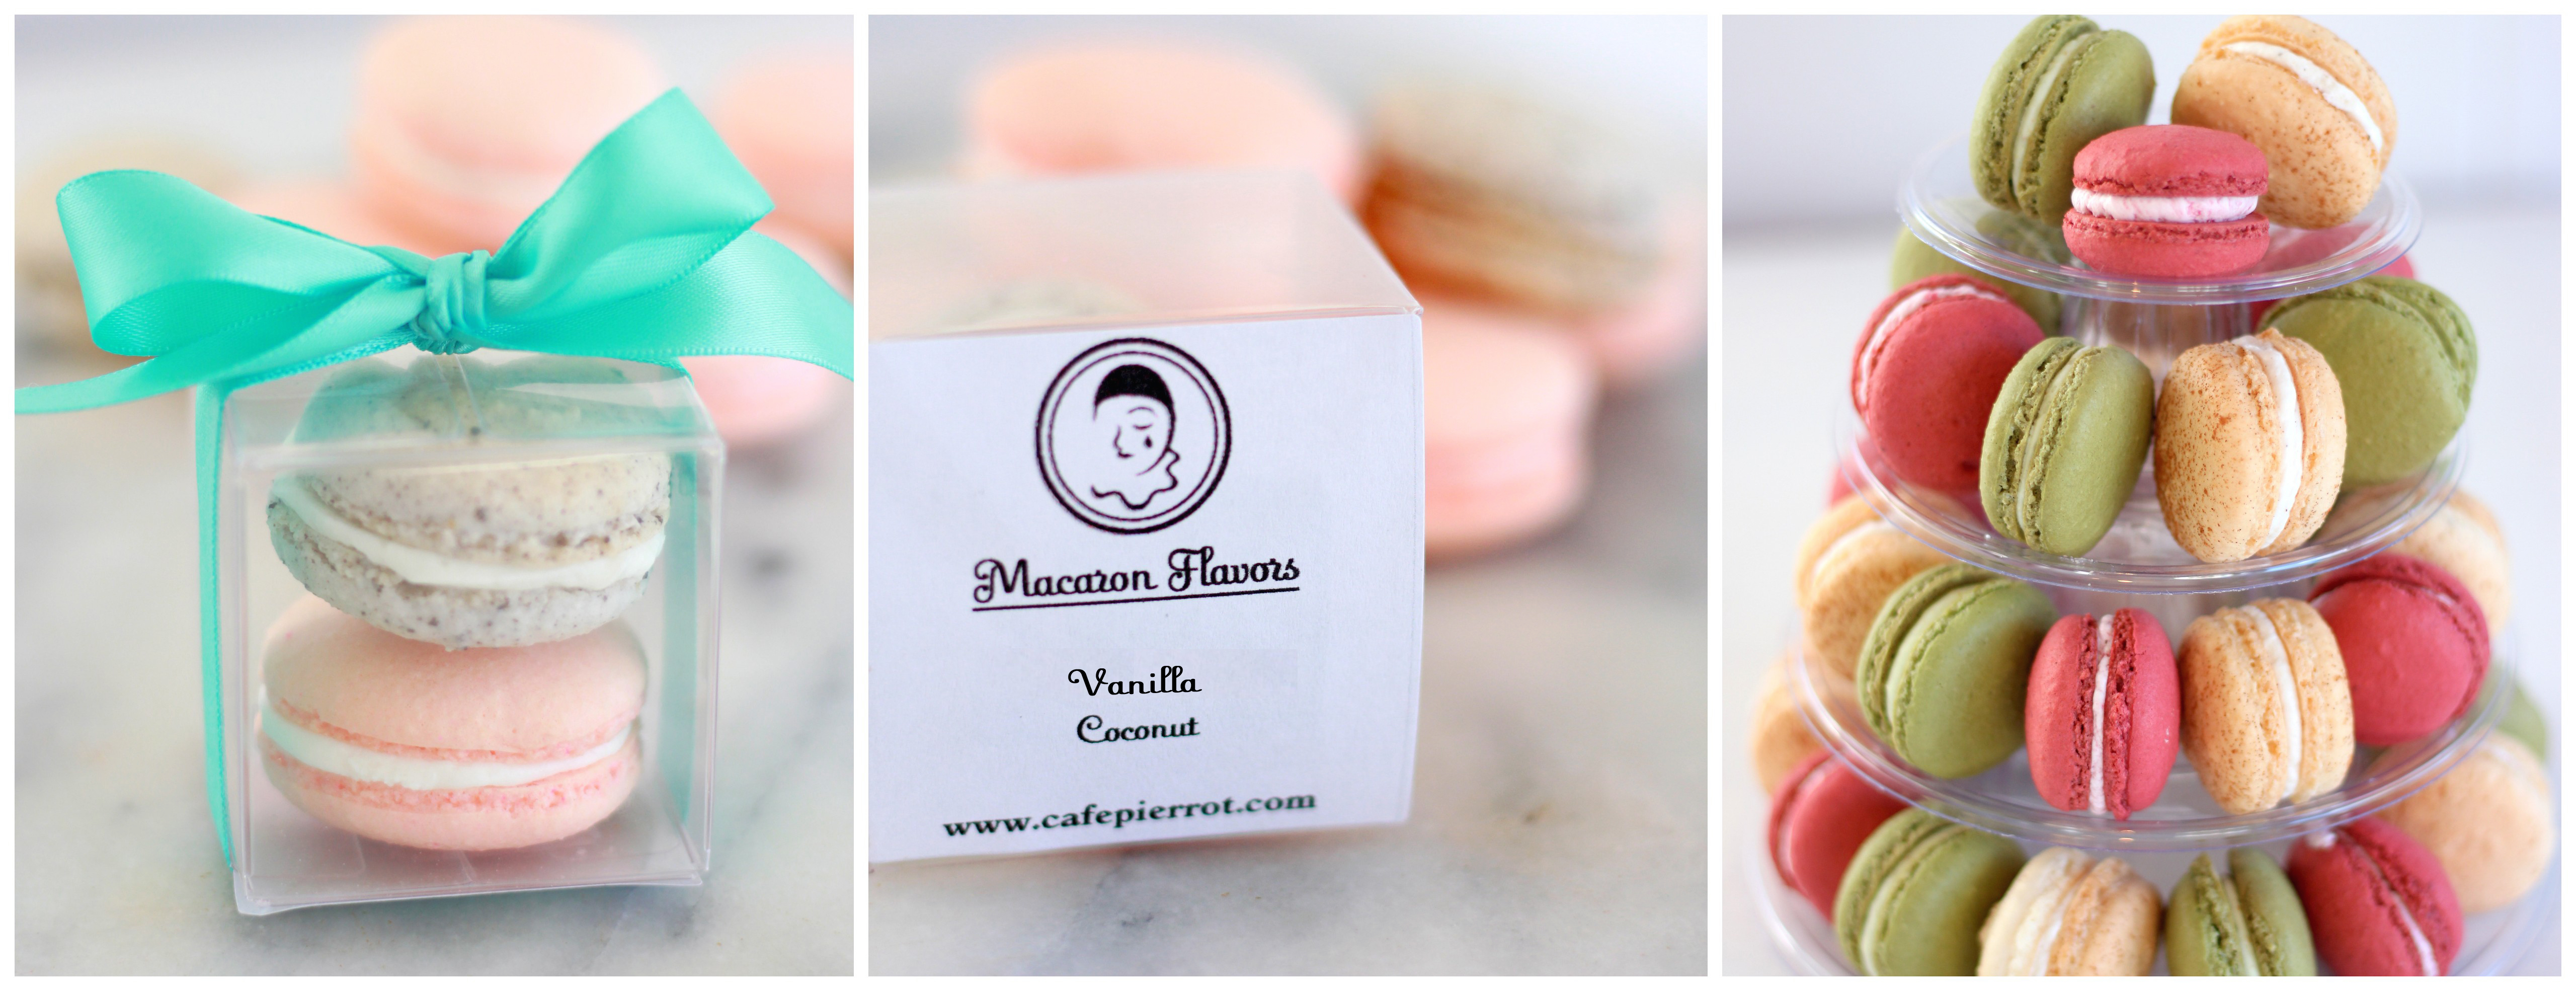 Macarons Wedding Favors Custom Flavors And Colors